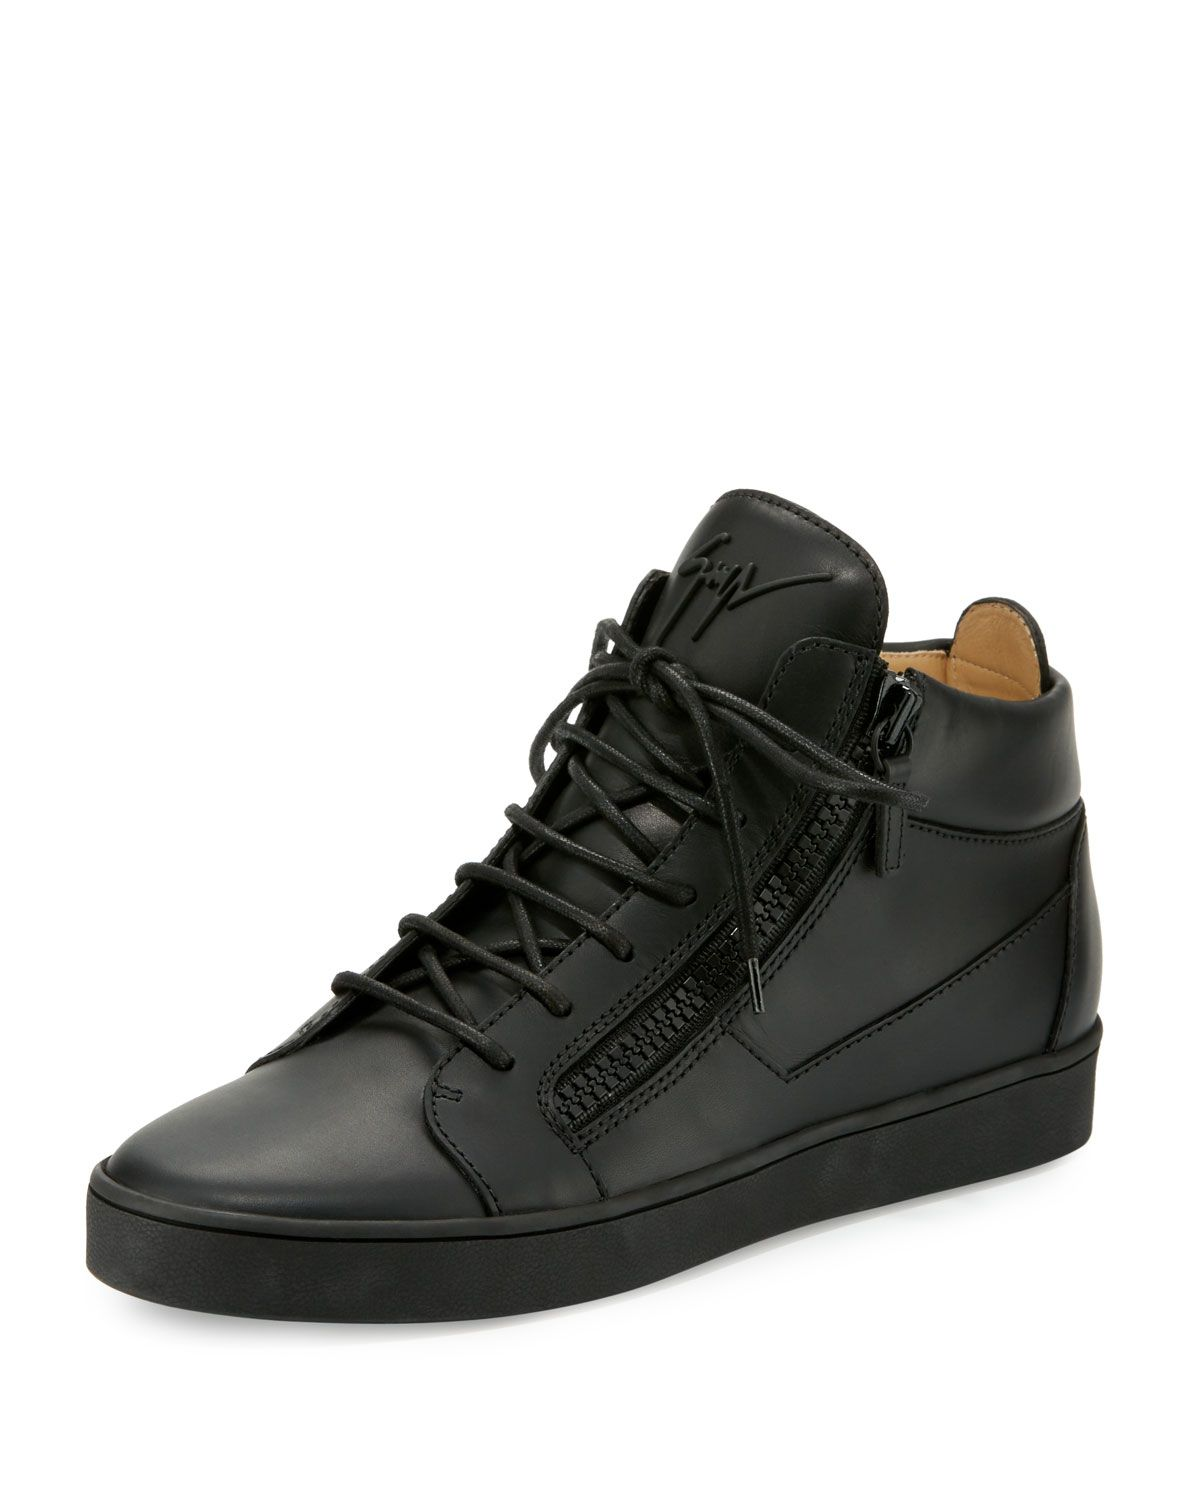 b5a0735ab1 Men s Tonal Leather Mid-Top Sneakers